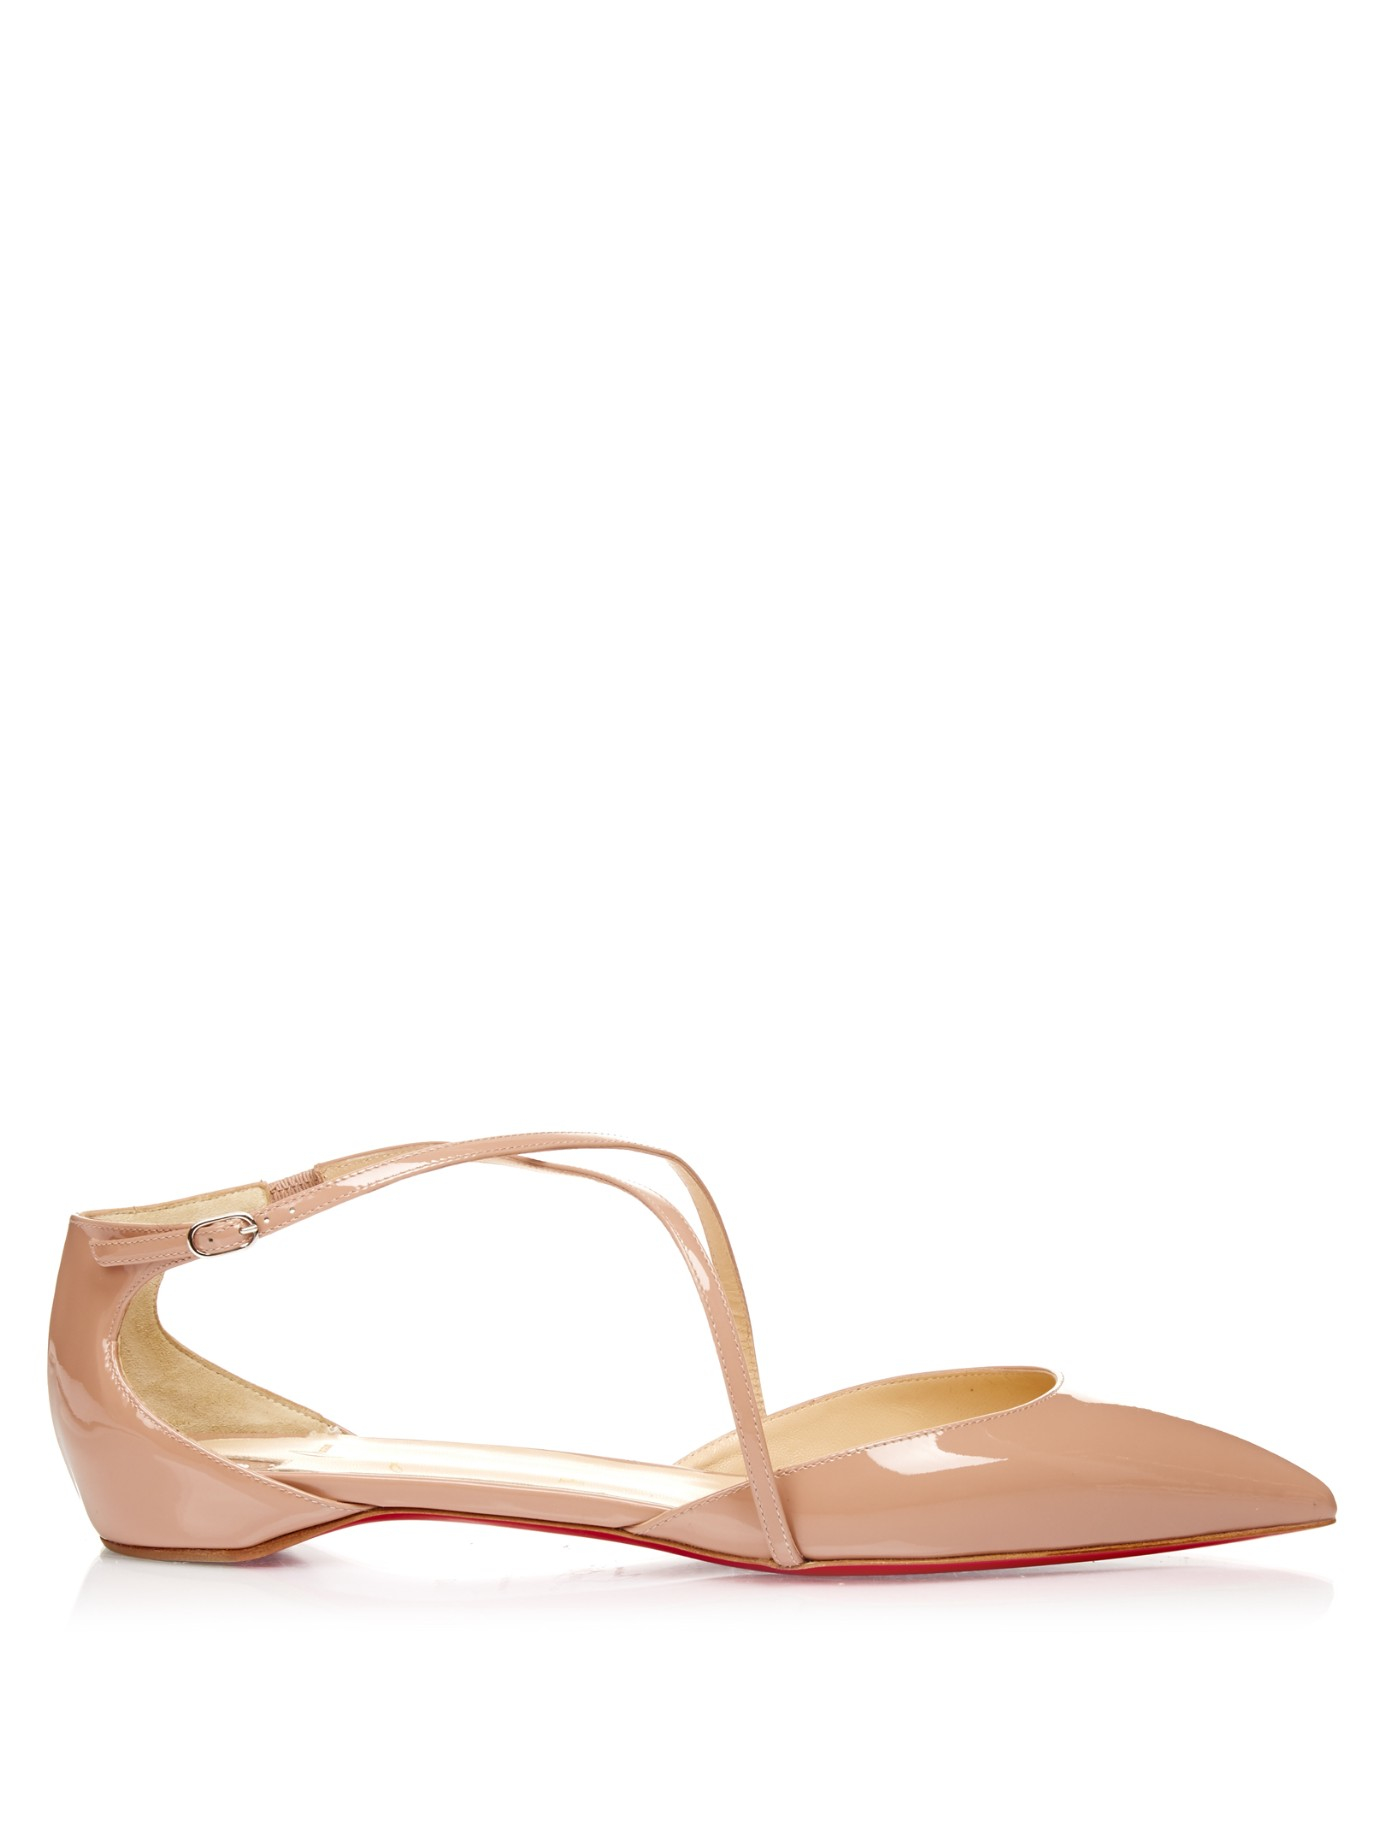 louboutin shoes - Christian louboutin Crosspiga Patent-leather Flats in Beige (NUDE ...